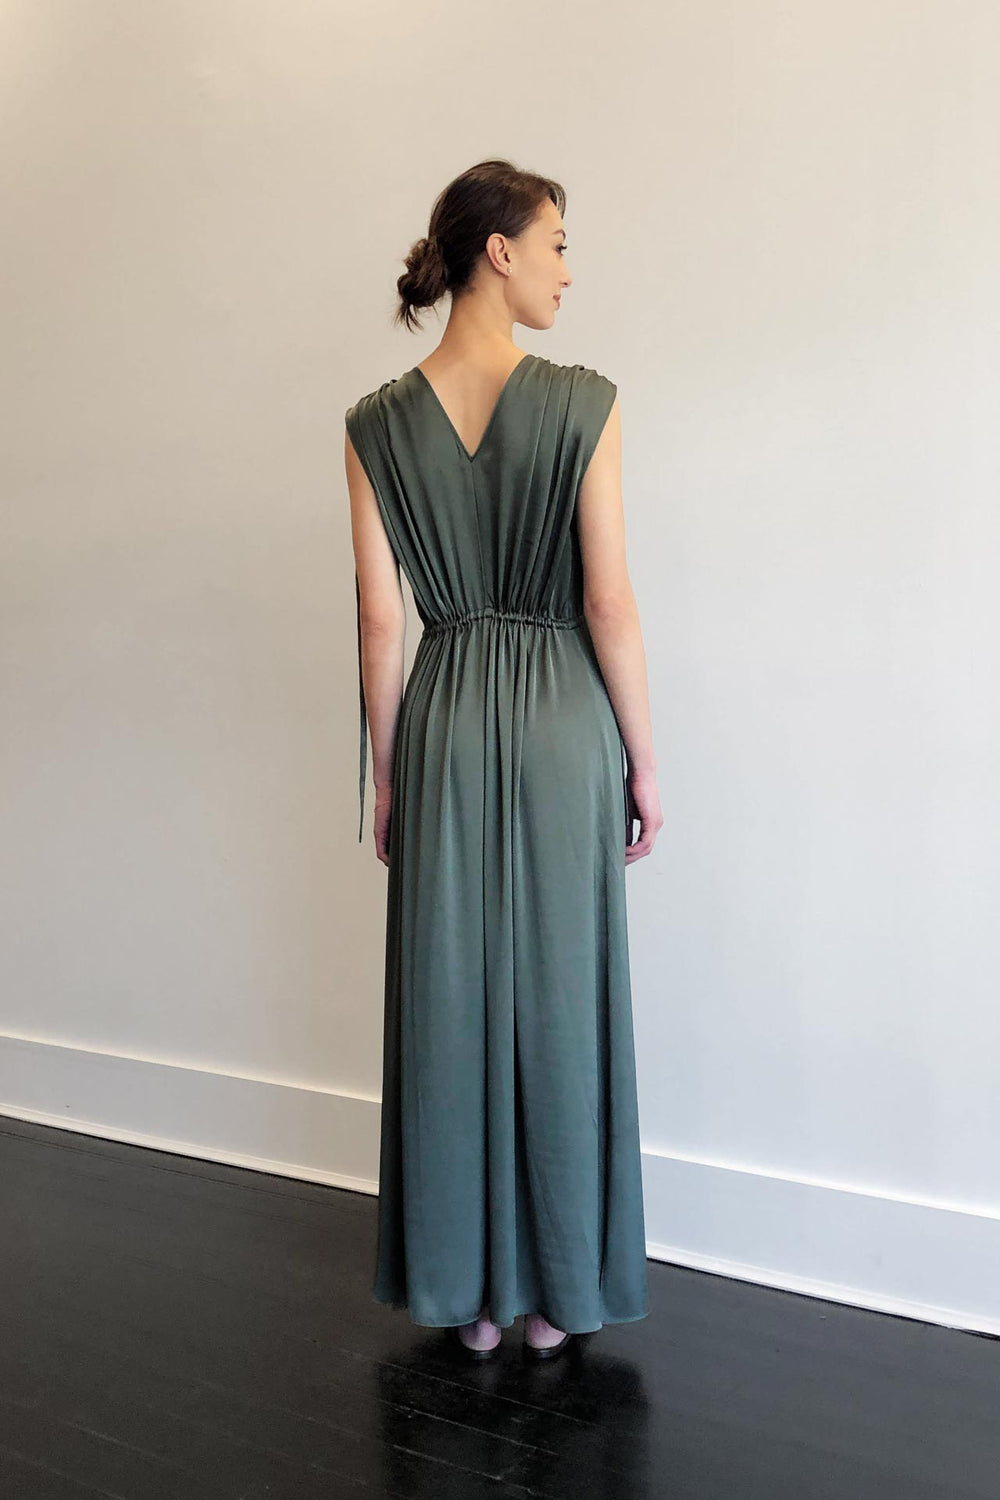 Voyager dress